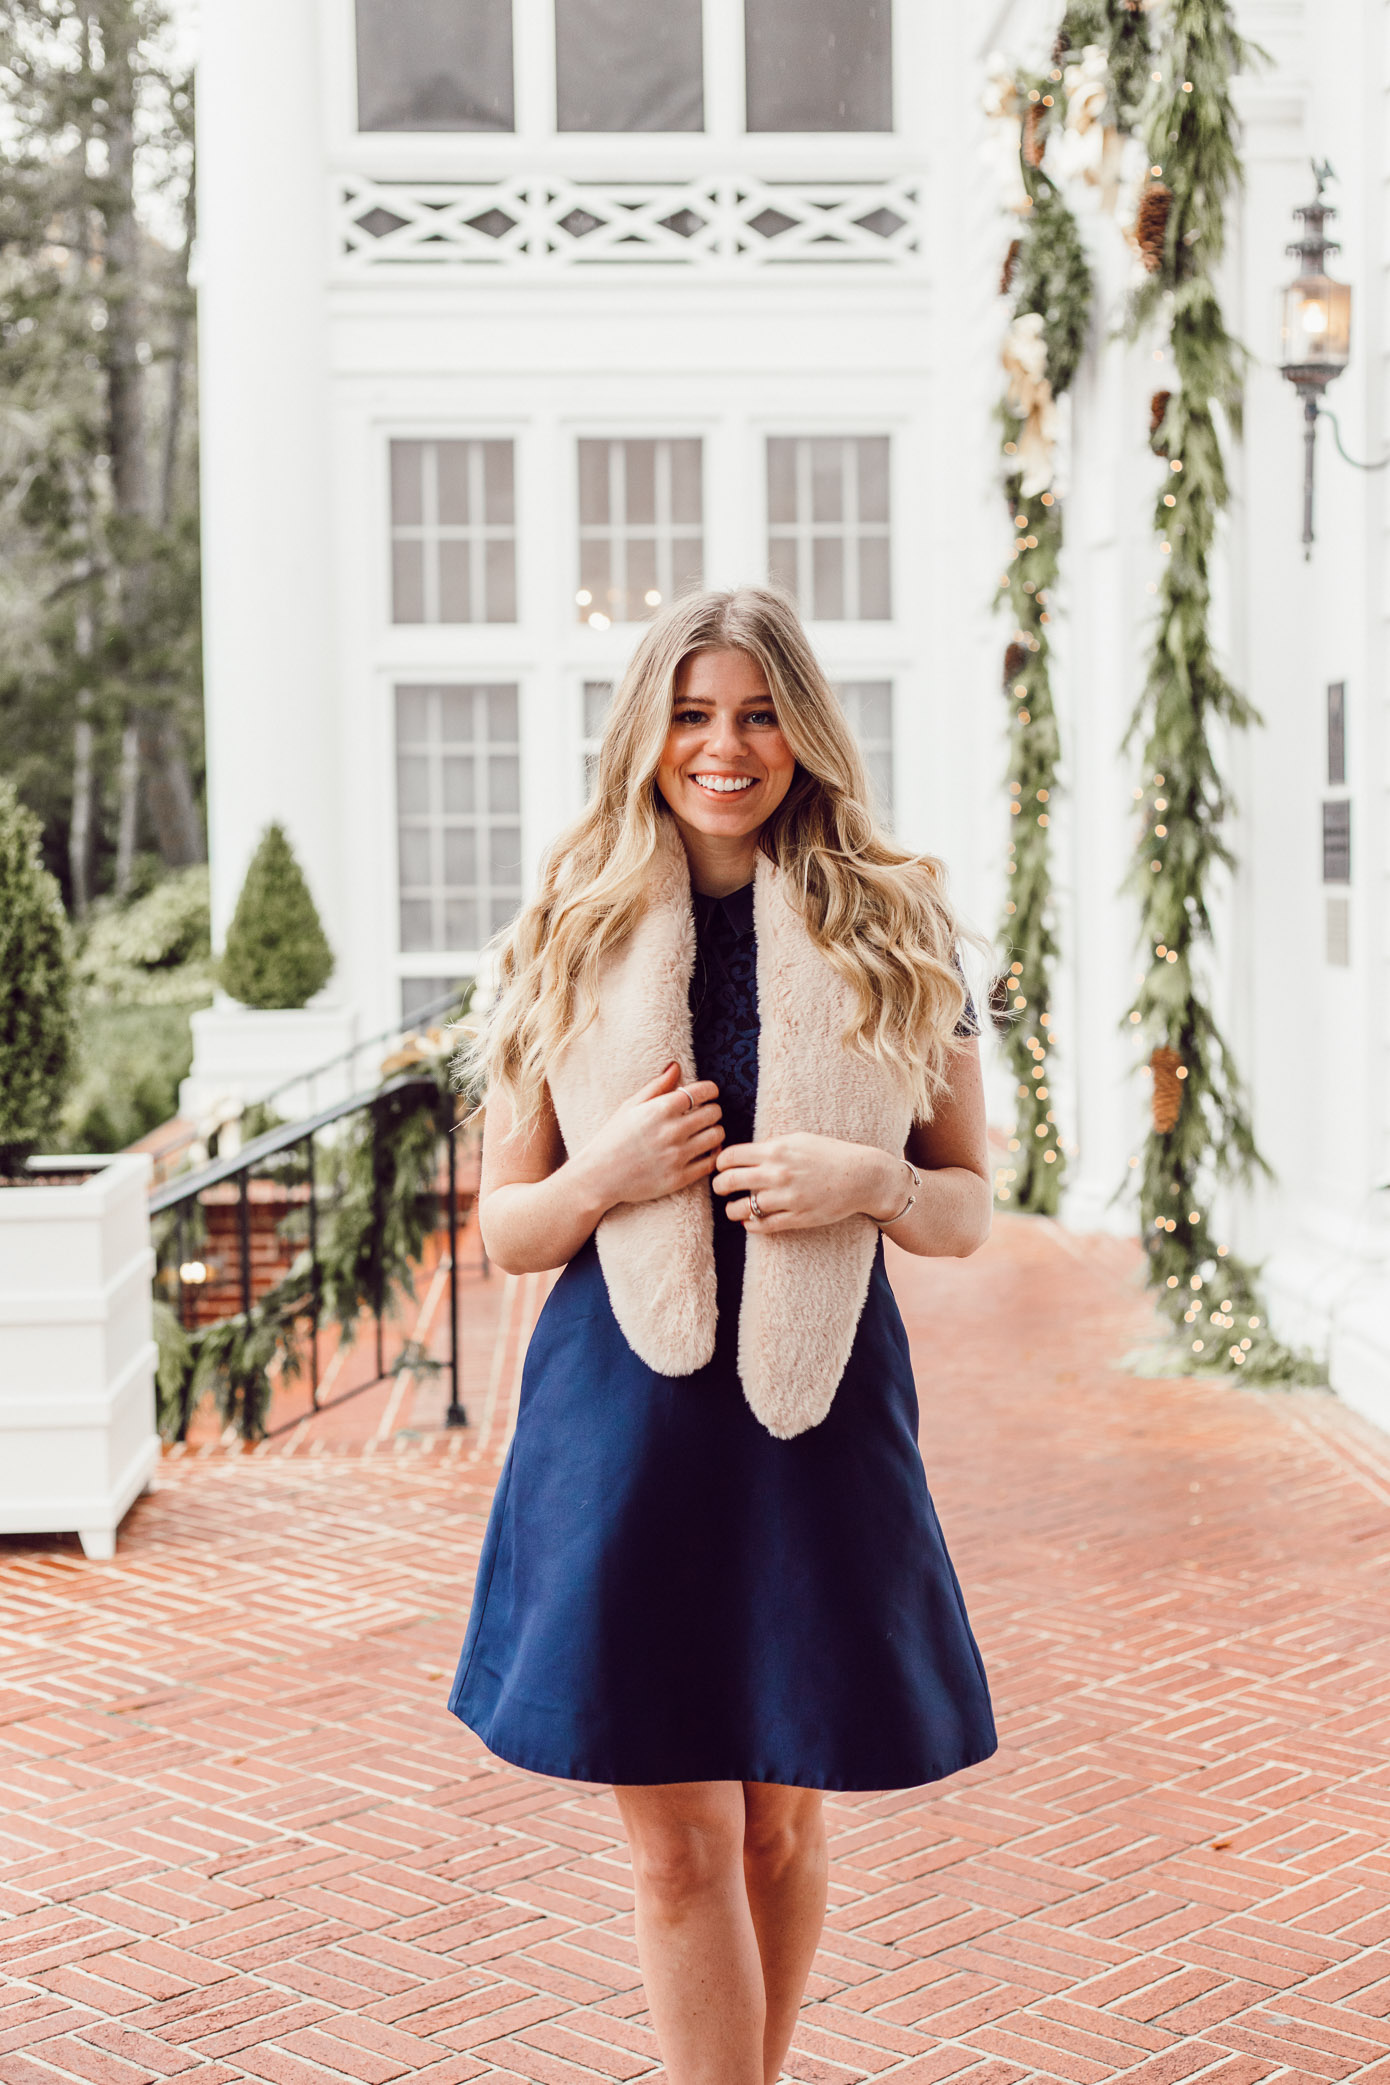 Finding the Perfect Holiday Party Dress with Rent the Runway on Louella Reese | Navy Lace Mini Dress, Christmas Party Dress, Faux Fur Stole